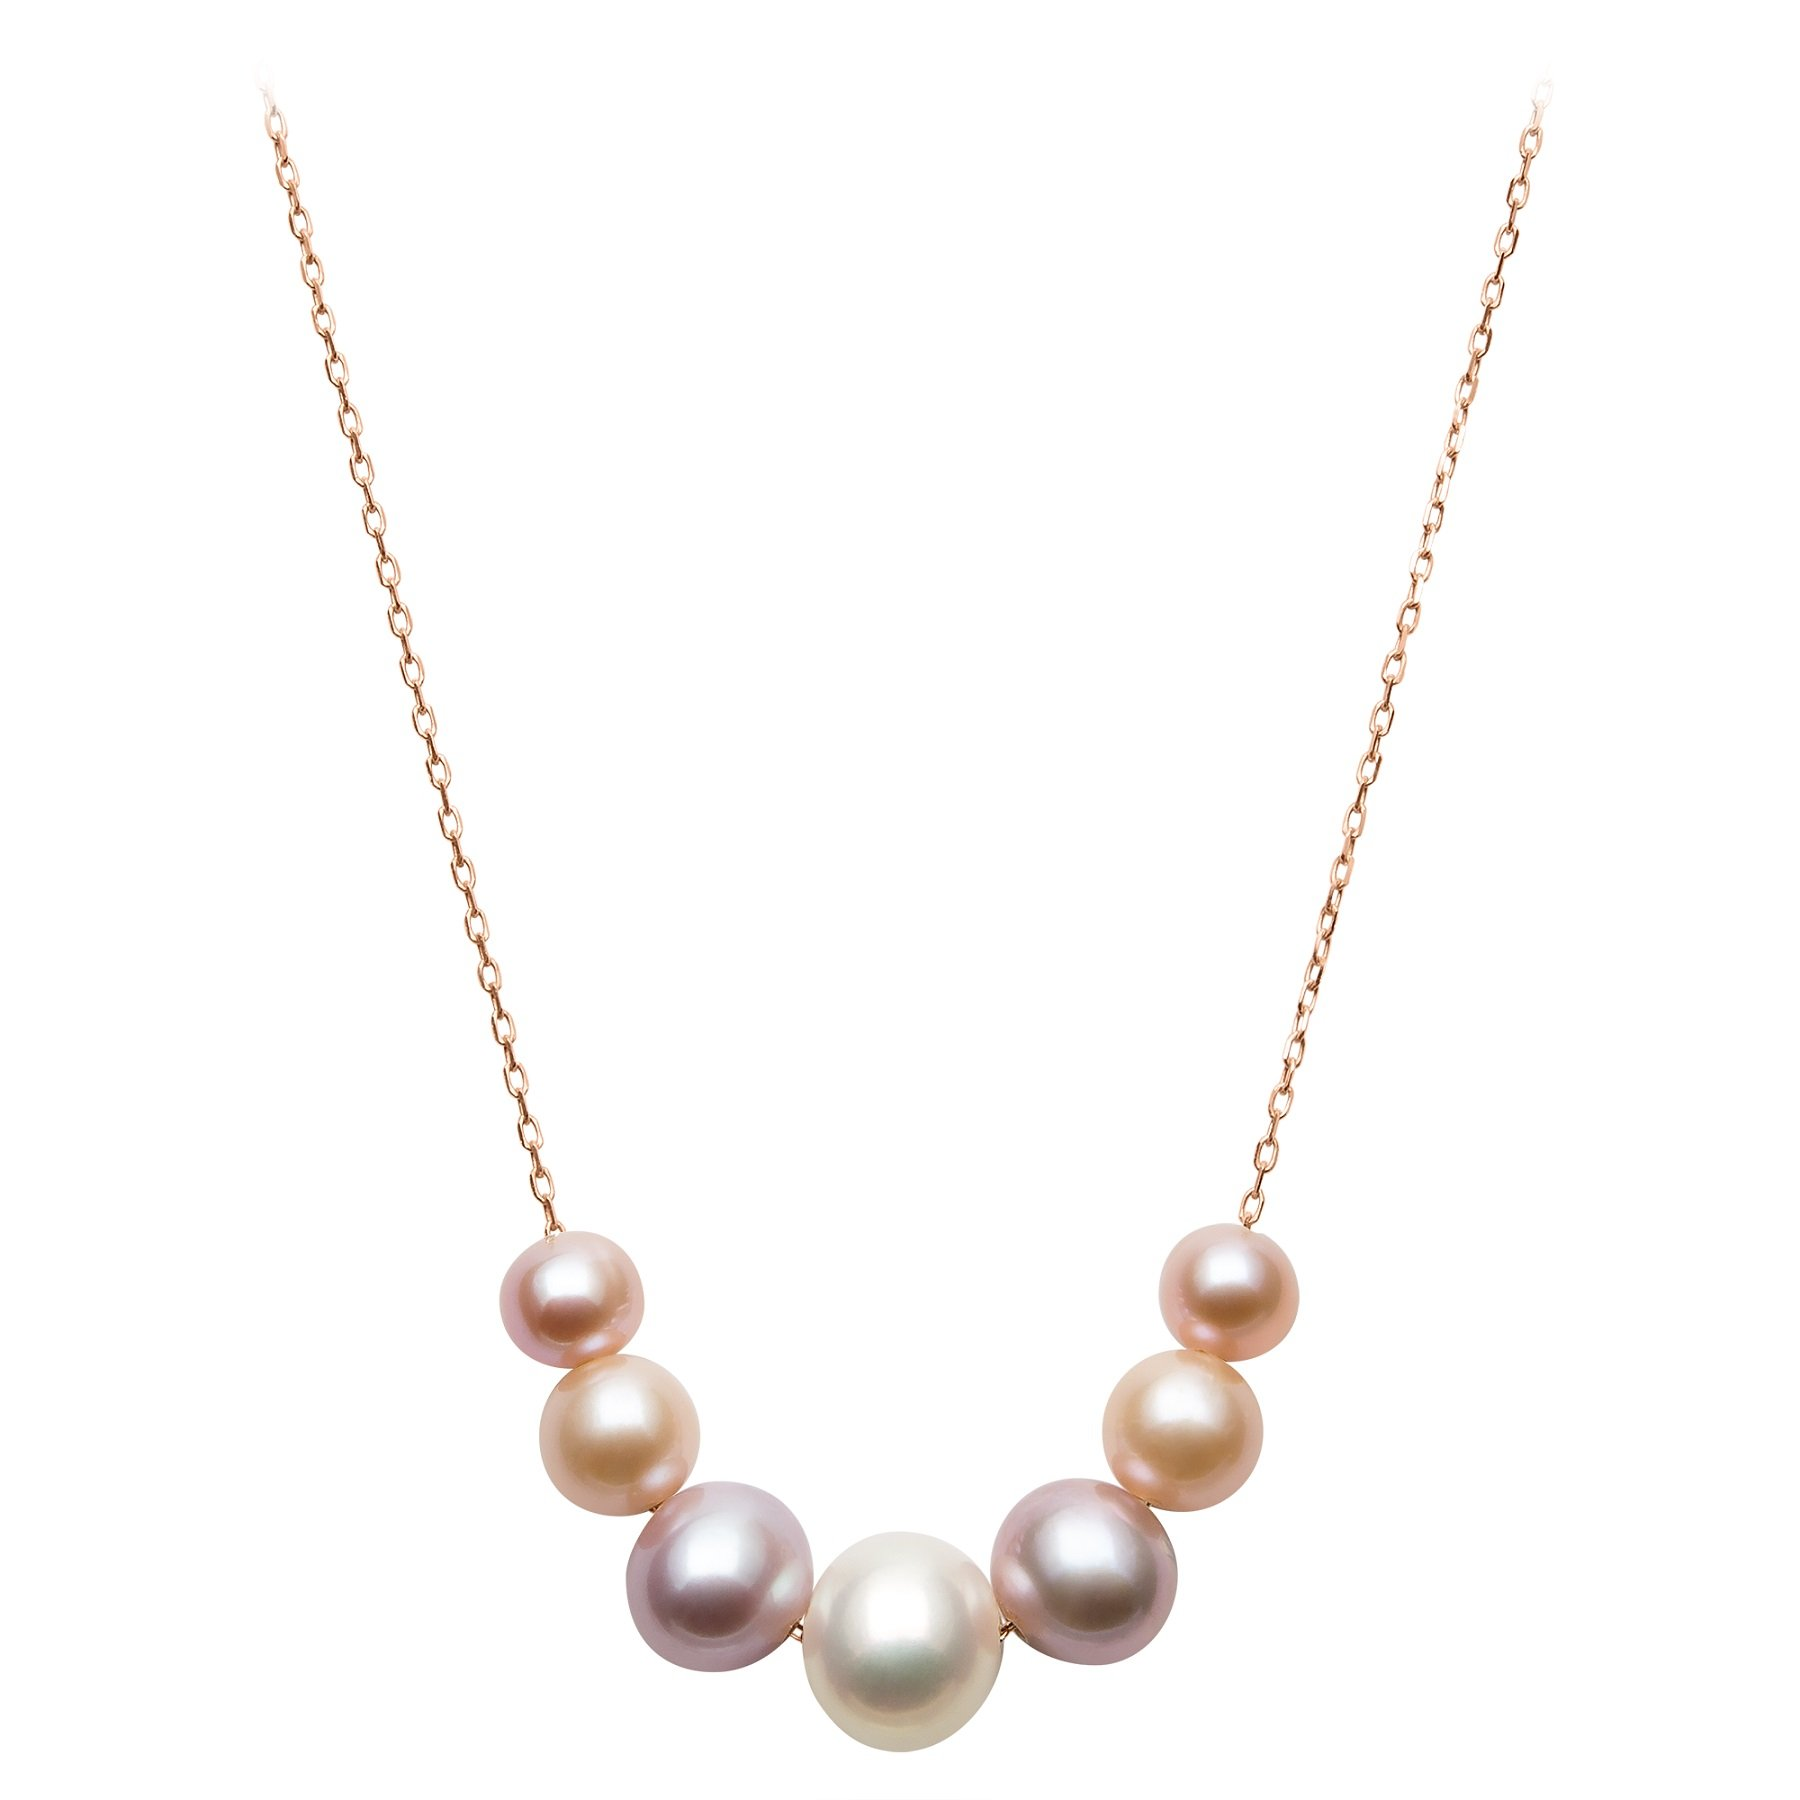 14k Rose Gold 6-9.5mm Multi-Colored Pink Cultured Freshwater Pearl Chain Necklace, 18''